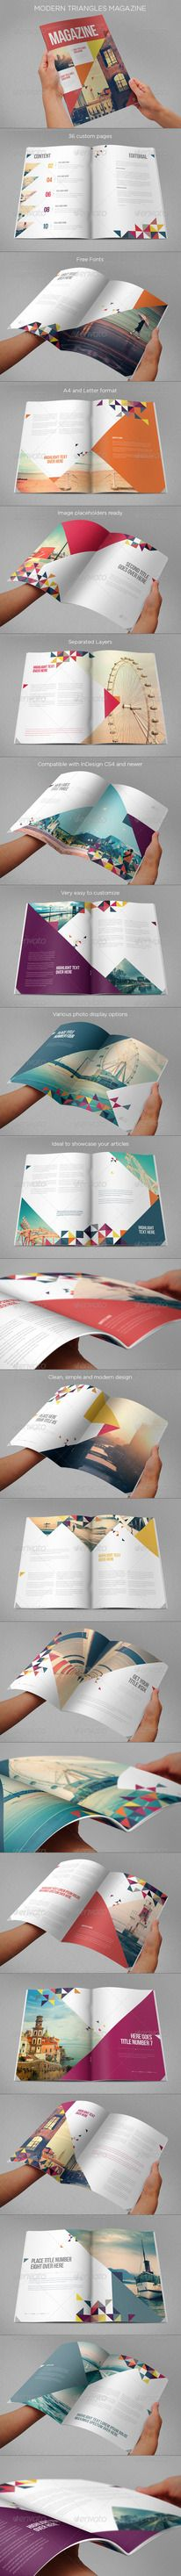 Modern Triangles Magazine - Magazines Print Templates — Designspiration